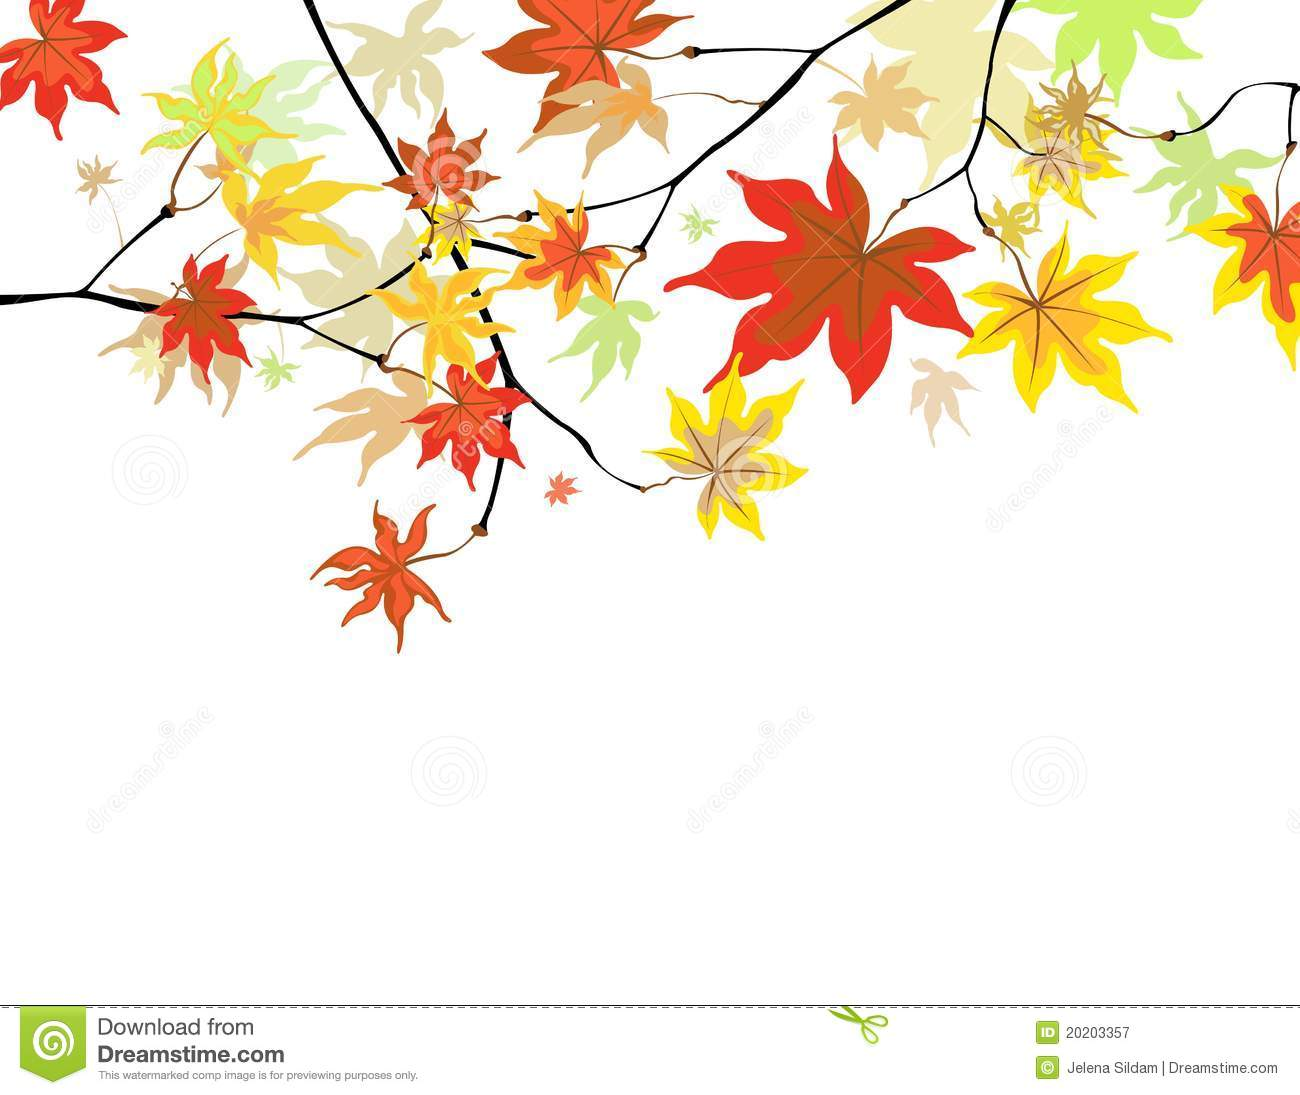 Maple Leaf Wallpaper For Fall Season Autumn Leaves Stock Vector Image Of Tree Ornament